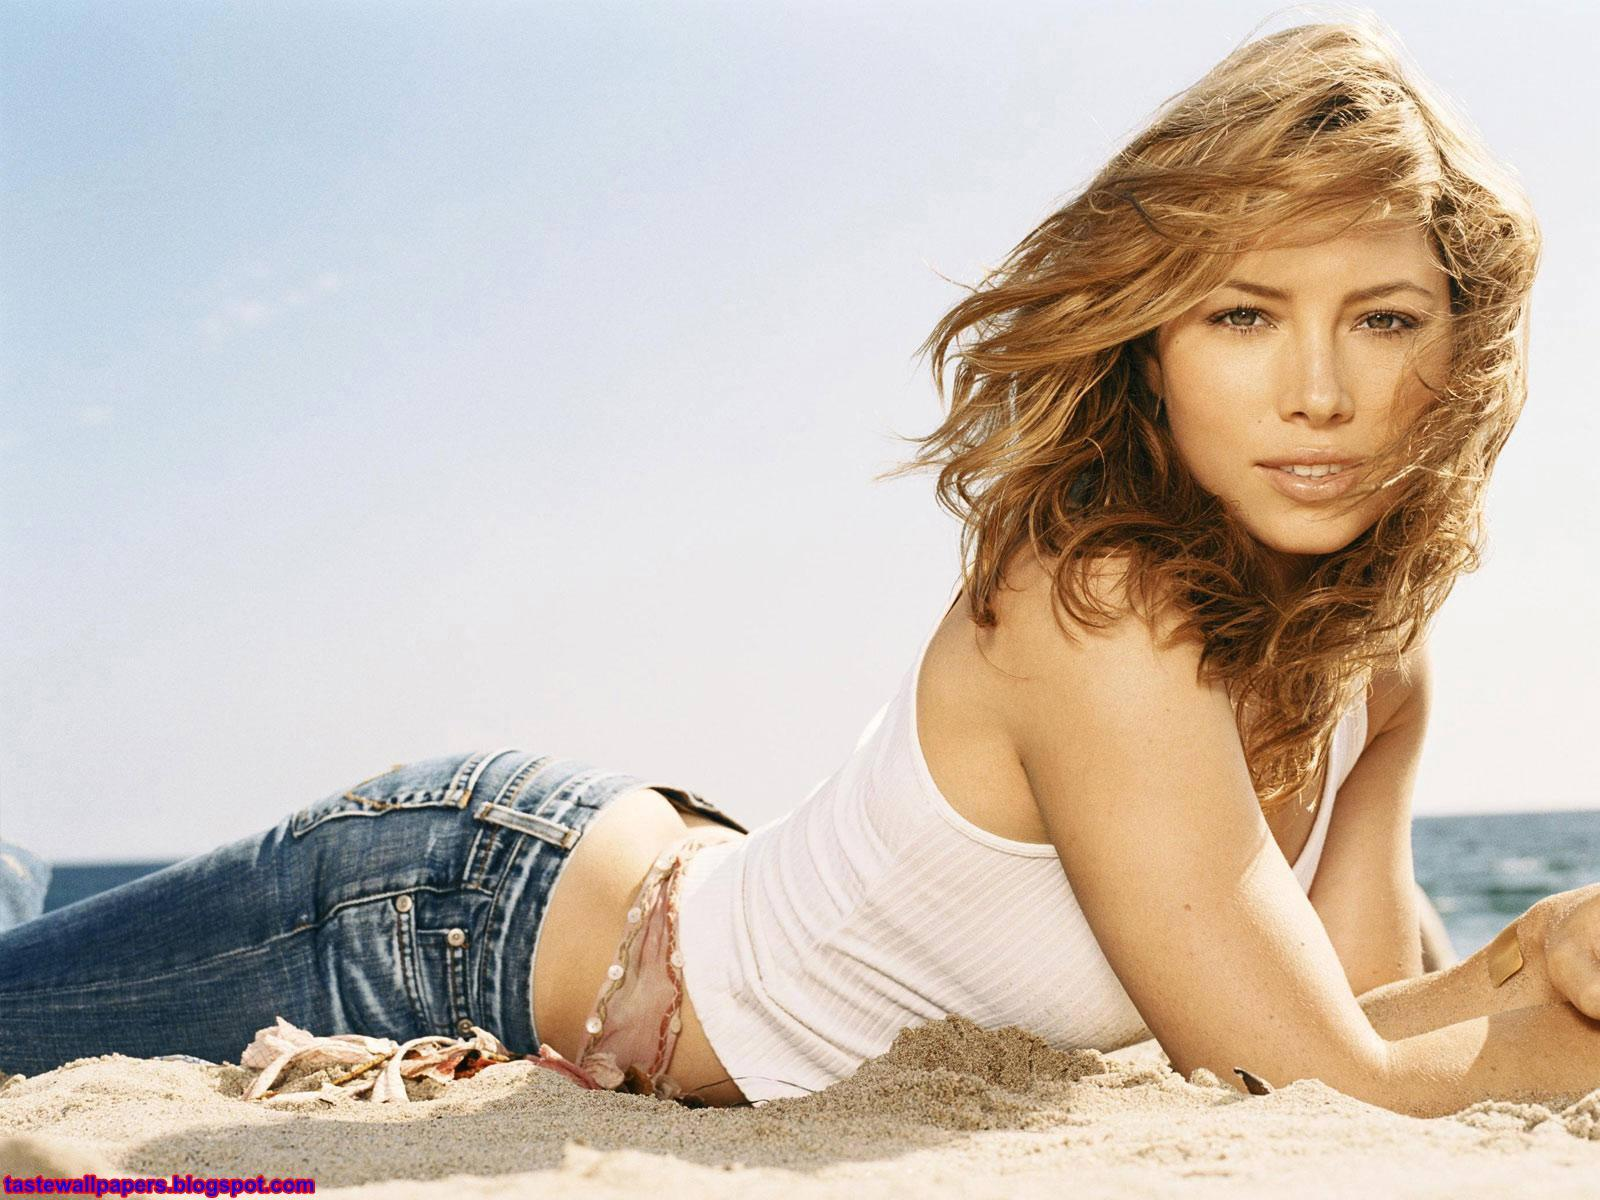 http://3.bp.blogspot.com/-IDUyLyg9Yvw/Tq0SxmyJduI/AAAAAAAAH04/Jd8tFux_CgU/s1600/Jessica_Biel_wallpapers_BEAUTIFUL_GIRL.jpg